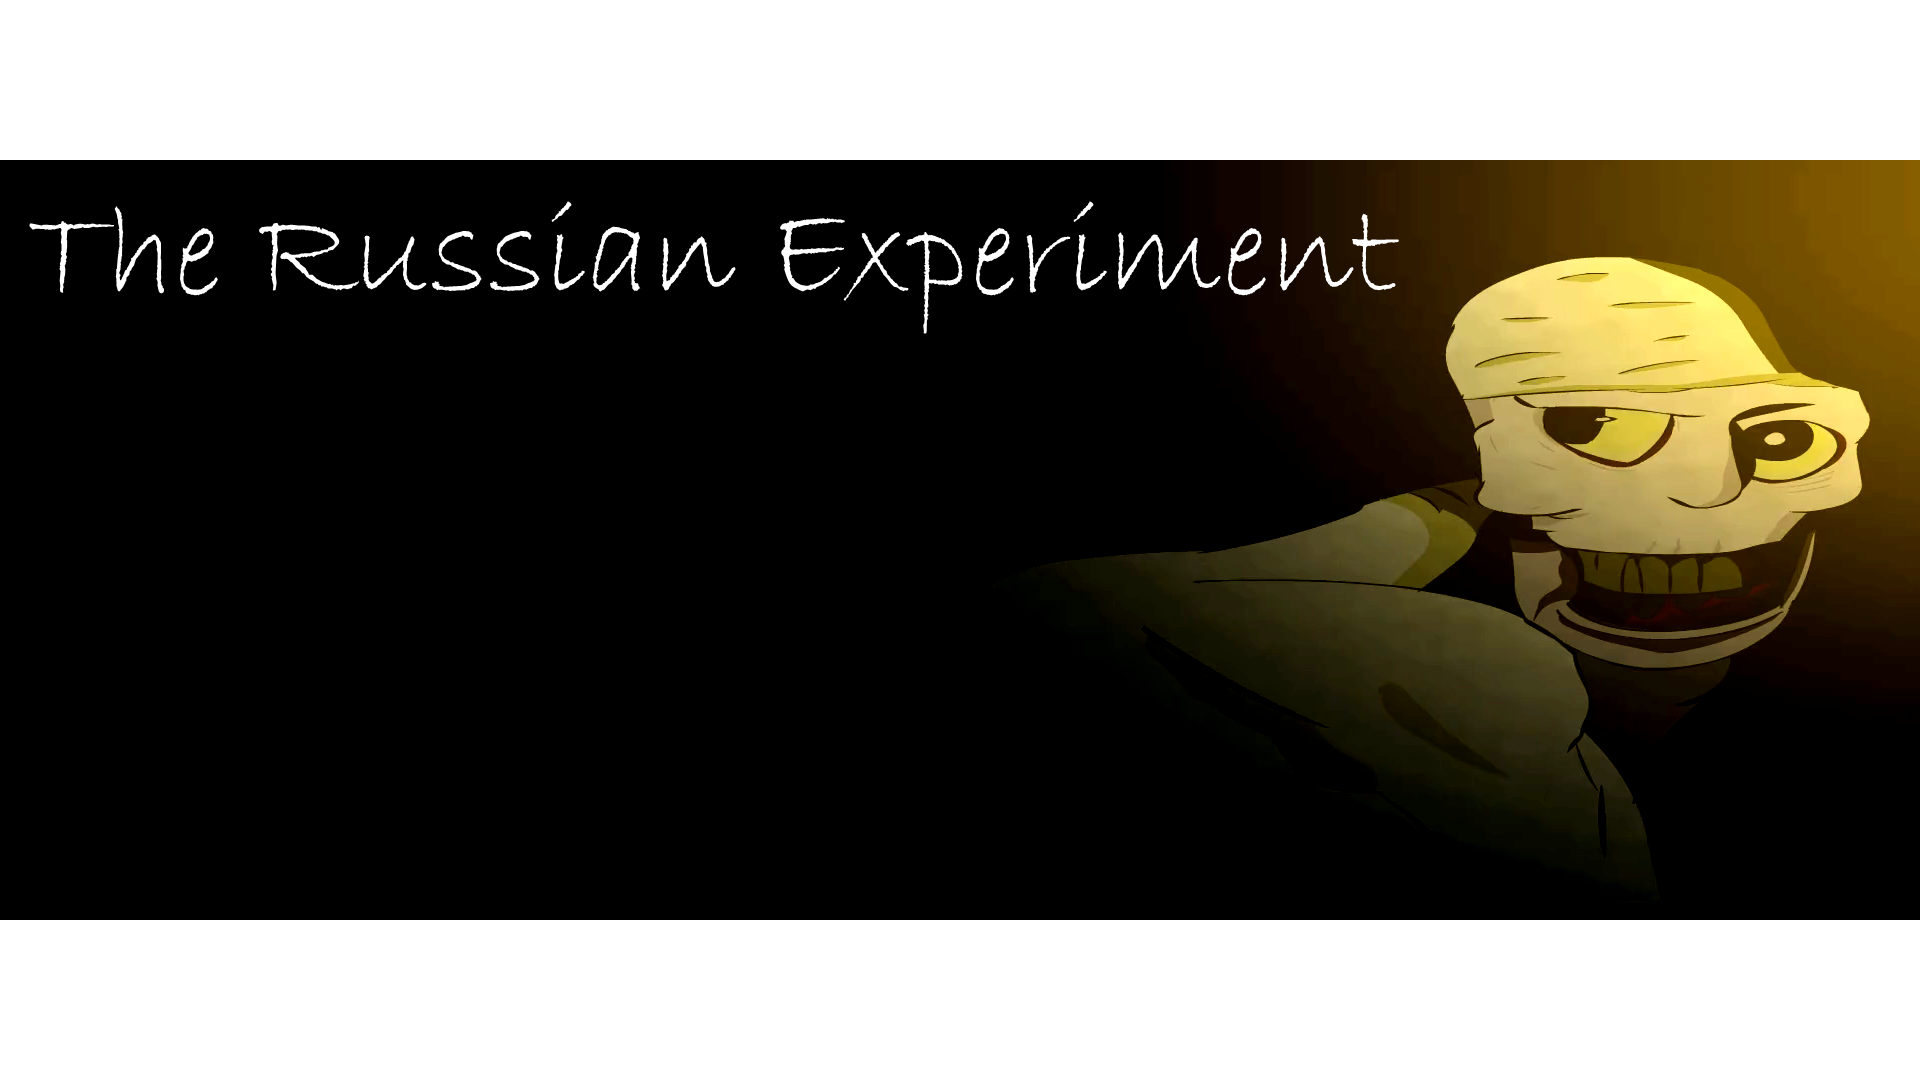 The Russian Experiment